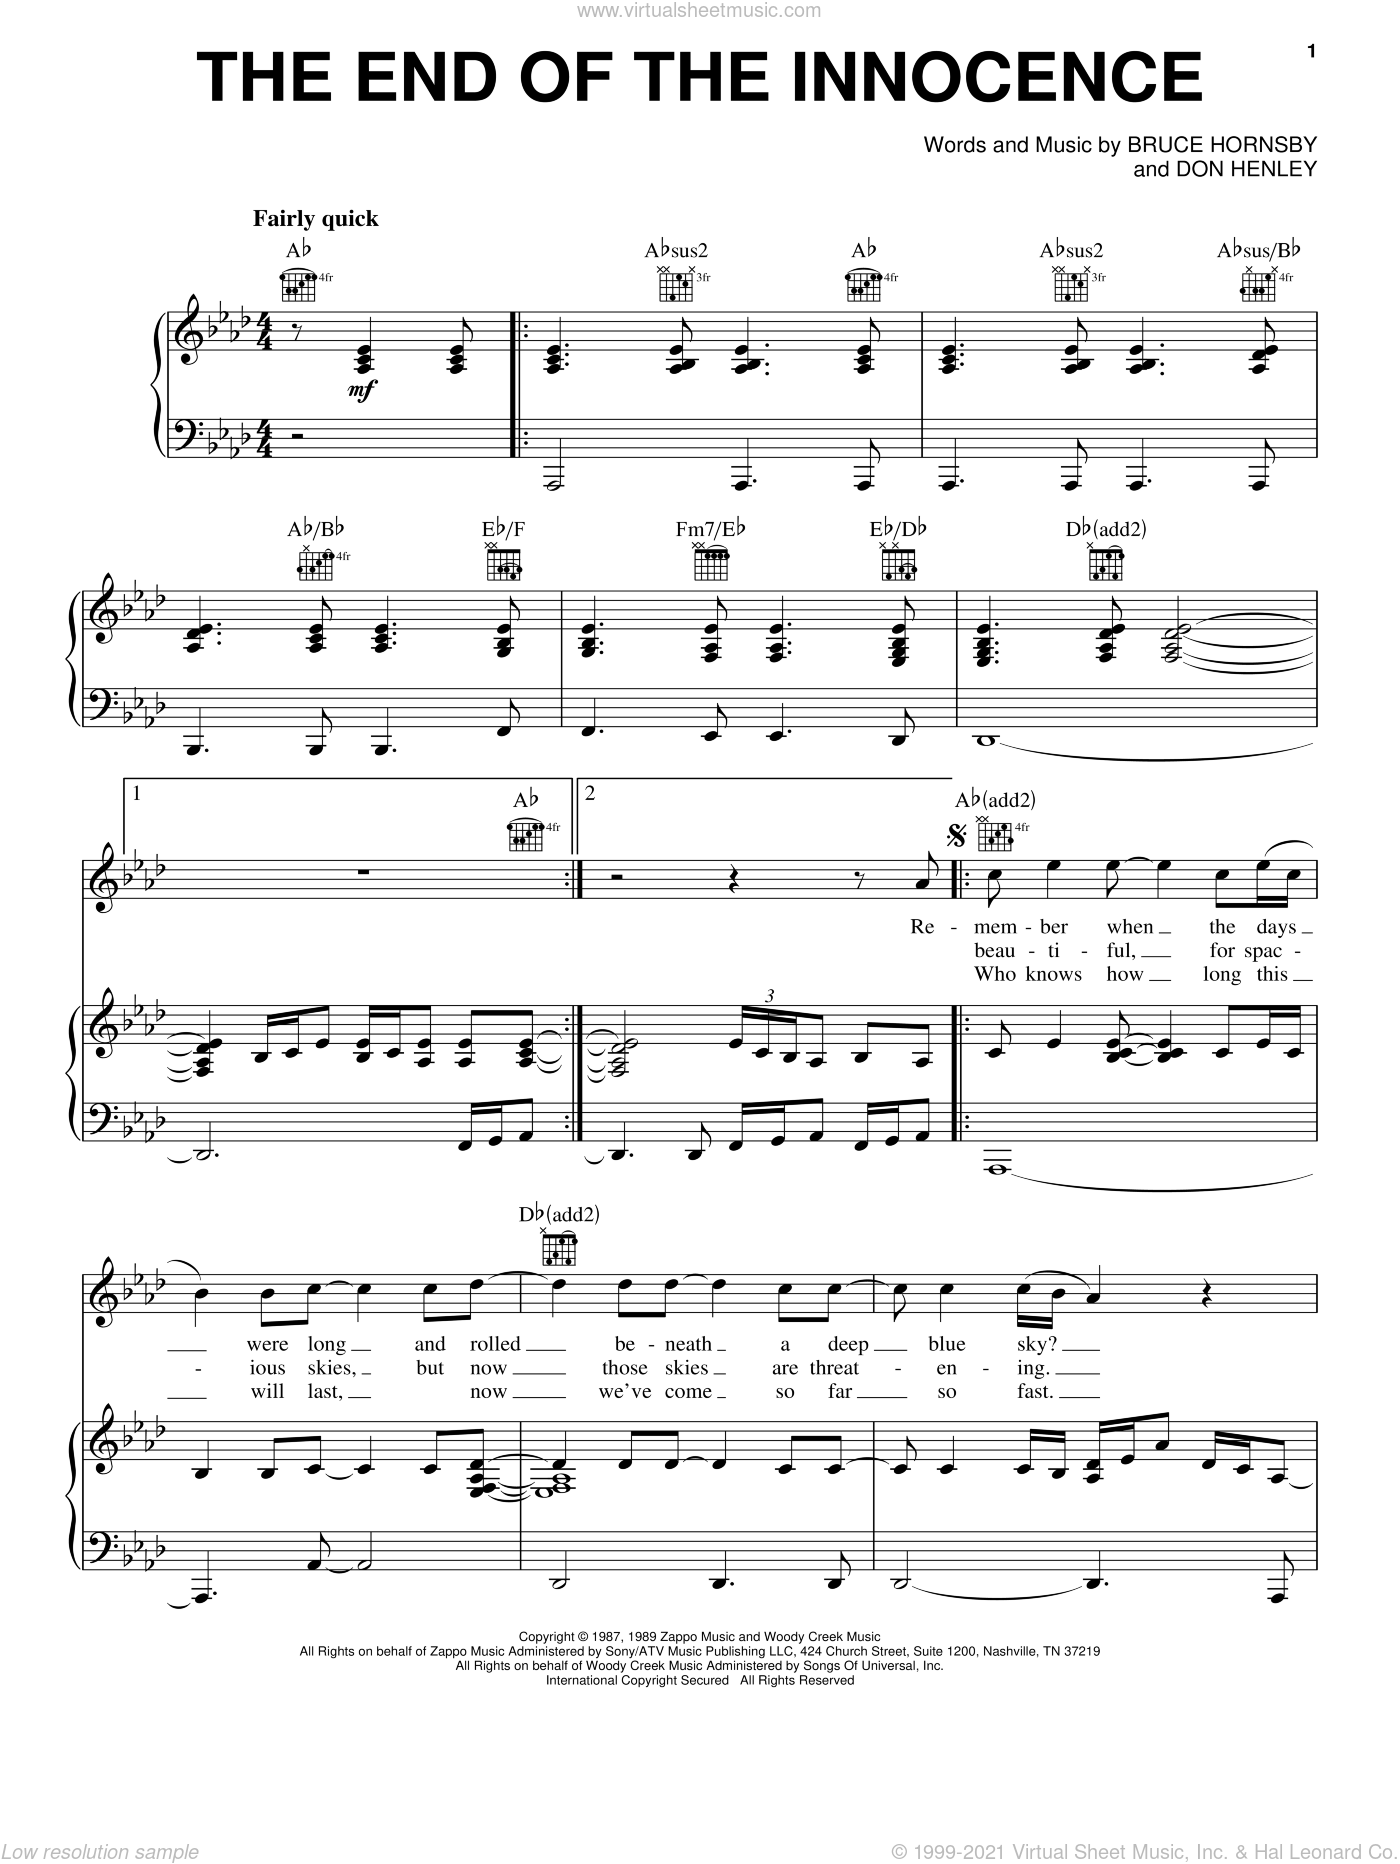 The End Of The Innocence sheet music for voice, piano or guitar by Don Henley and Bruce Hornsby, intermediate skill level